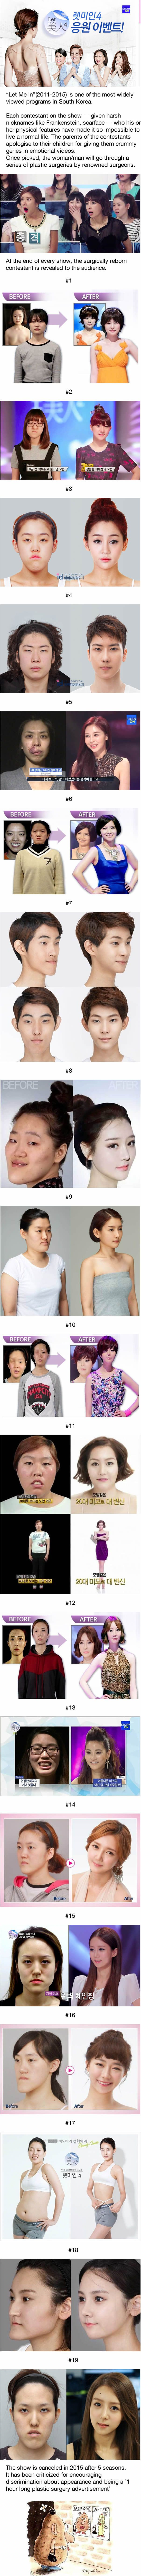 17 best ideas about plastic surgery show plastic 19 before and after photos from korean plastic surgery makeover show